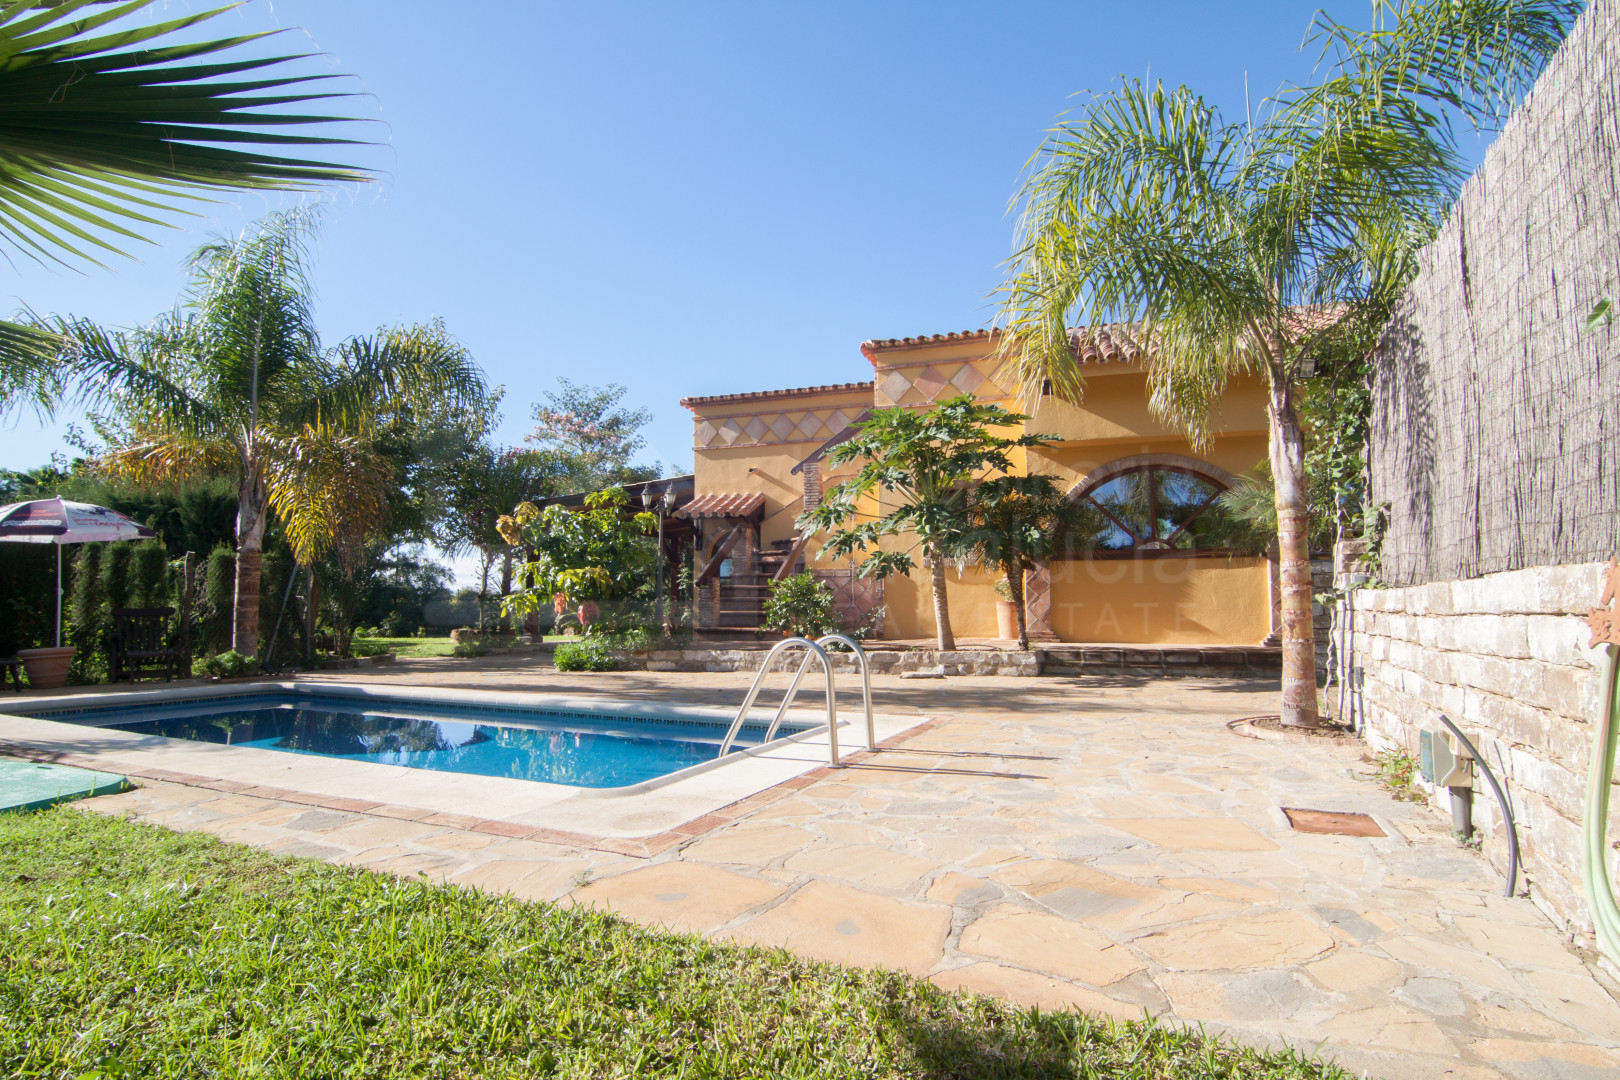 Three-bedroom country house ideal for ecological farming for sale near Estepona beach.